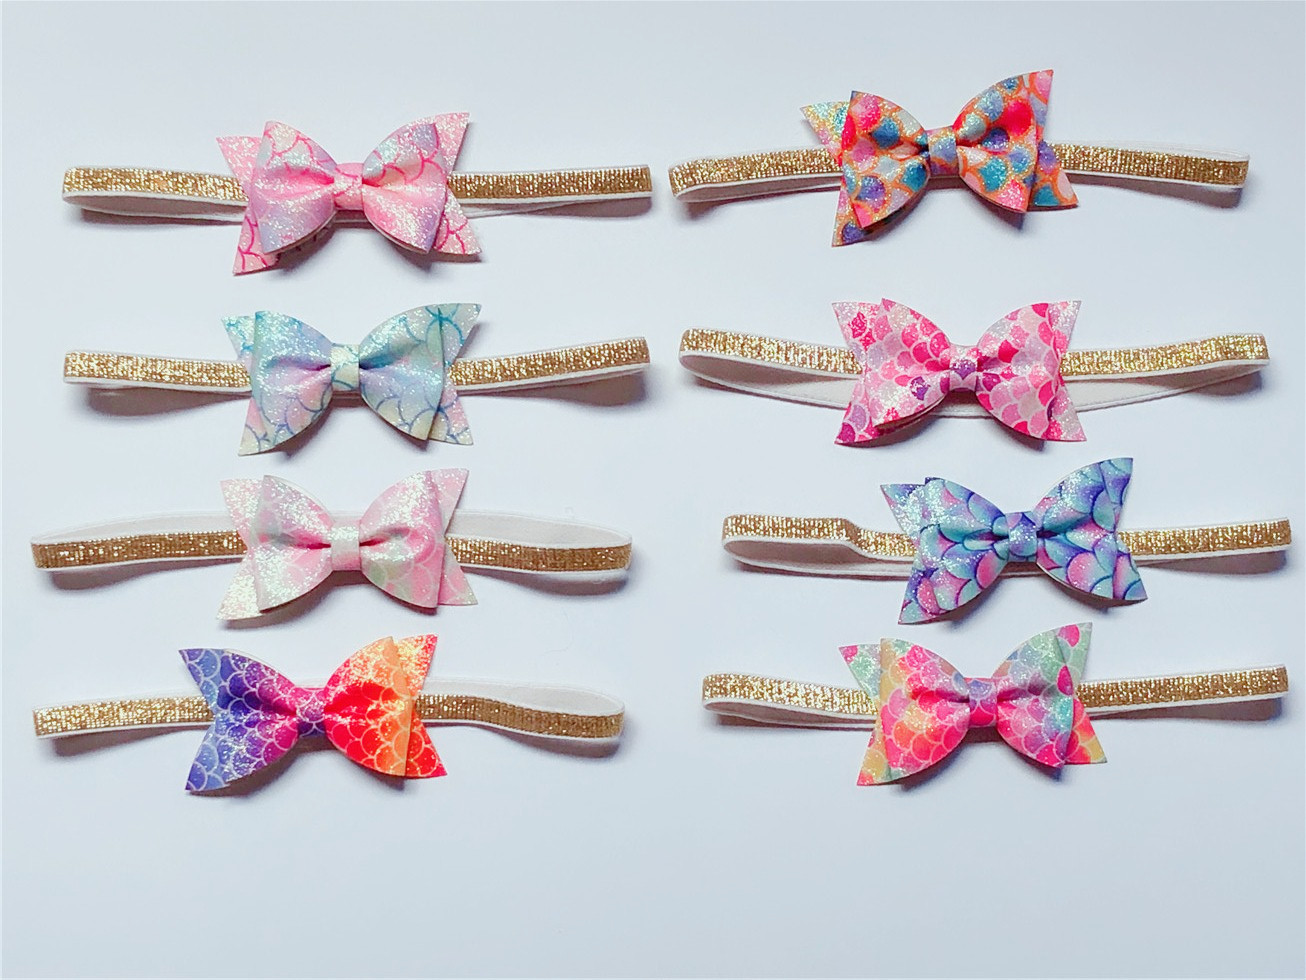 Boutique ins 24pcs Fashion Glitter Gradient Rainbow Bow Headbands Fairy Mermaid Print Bowknot Soft Hairbands Princess